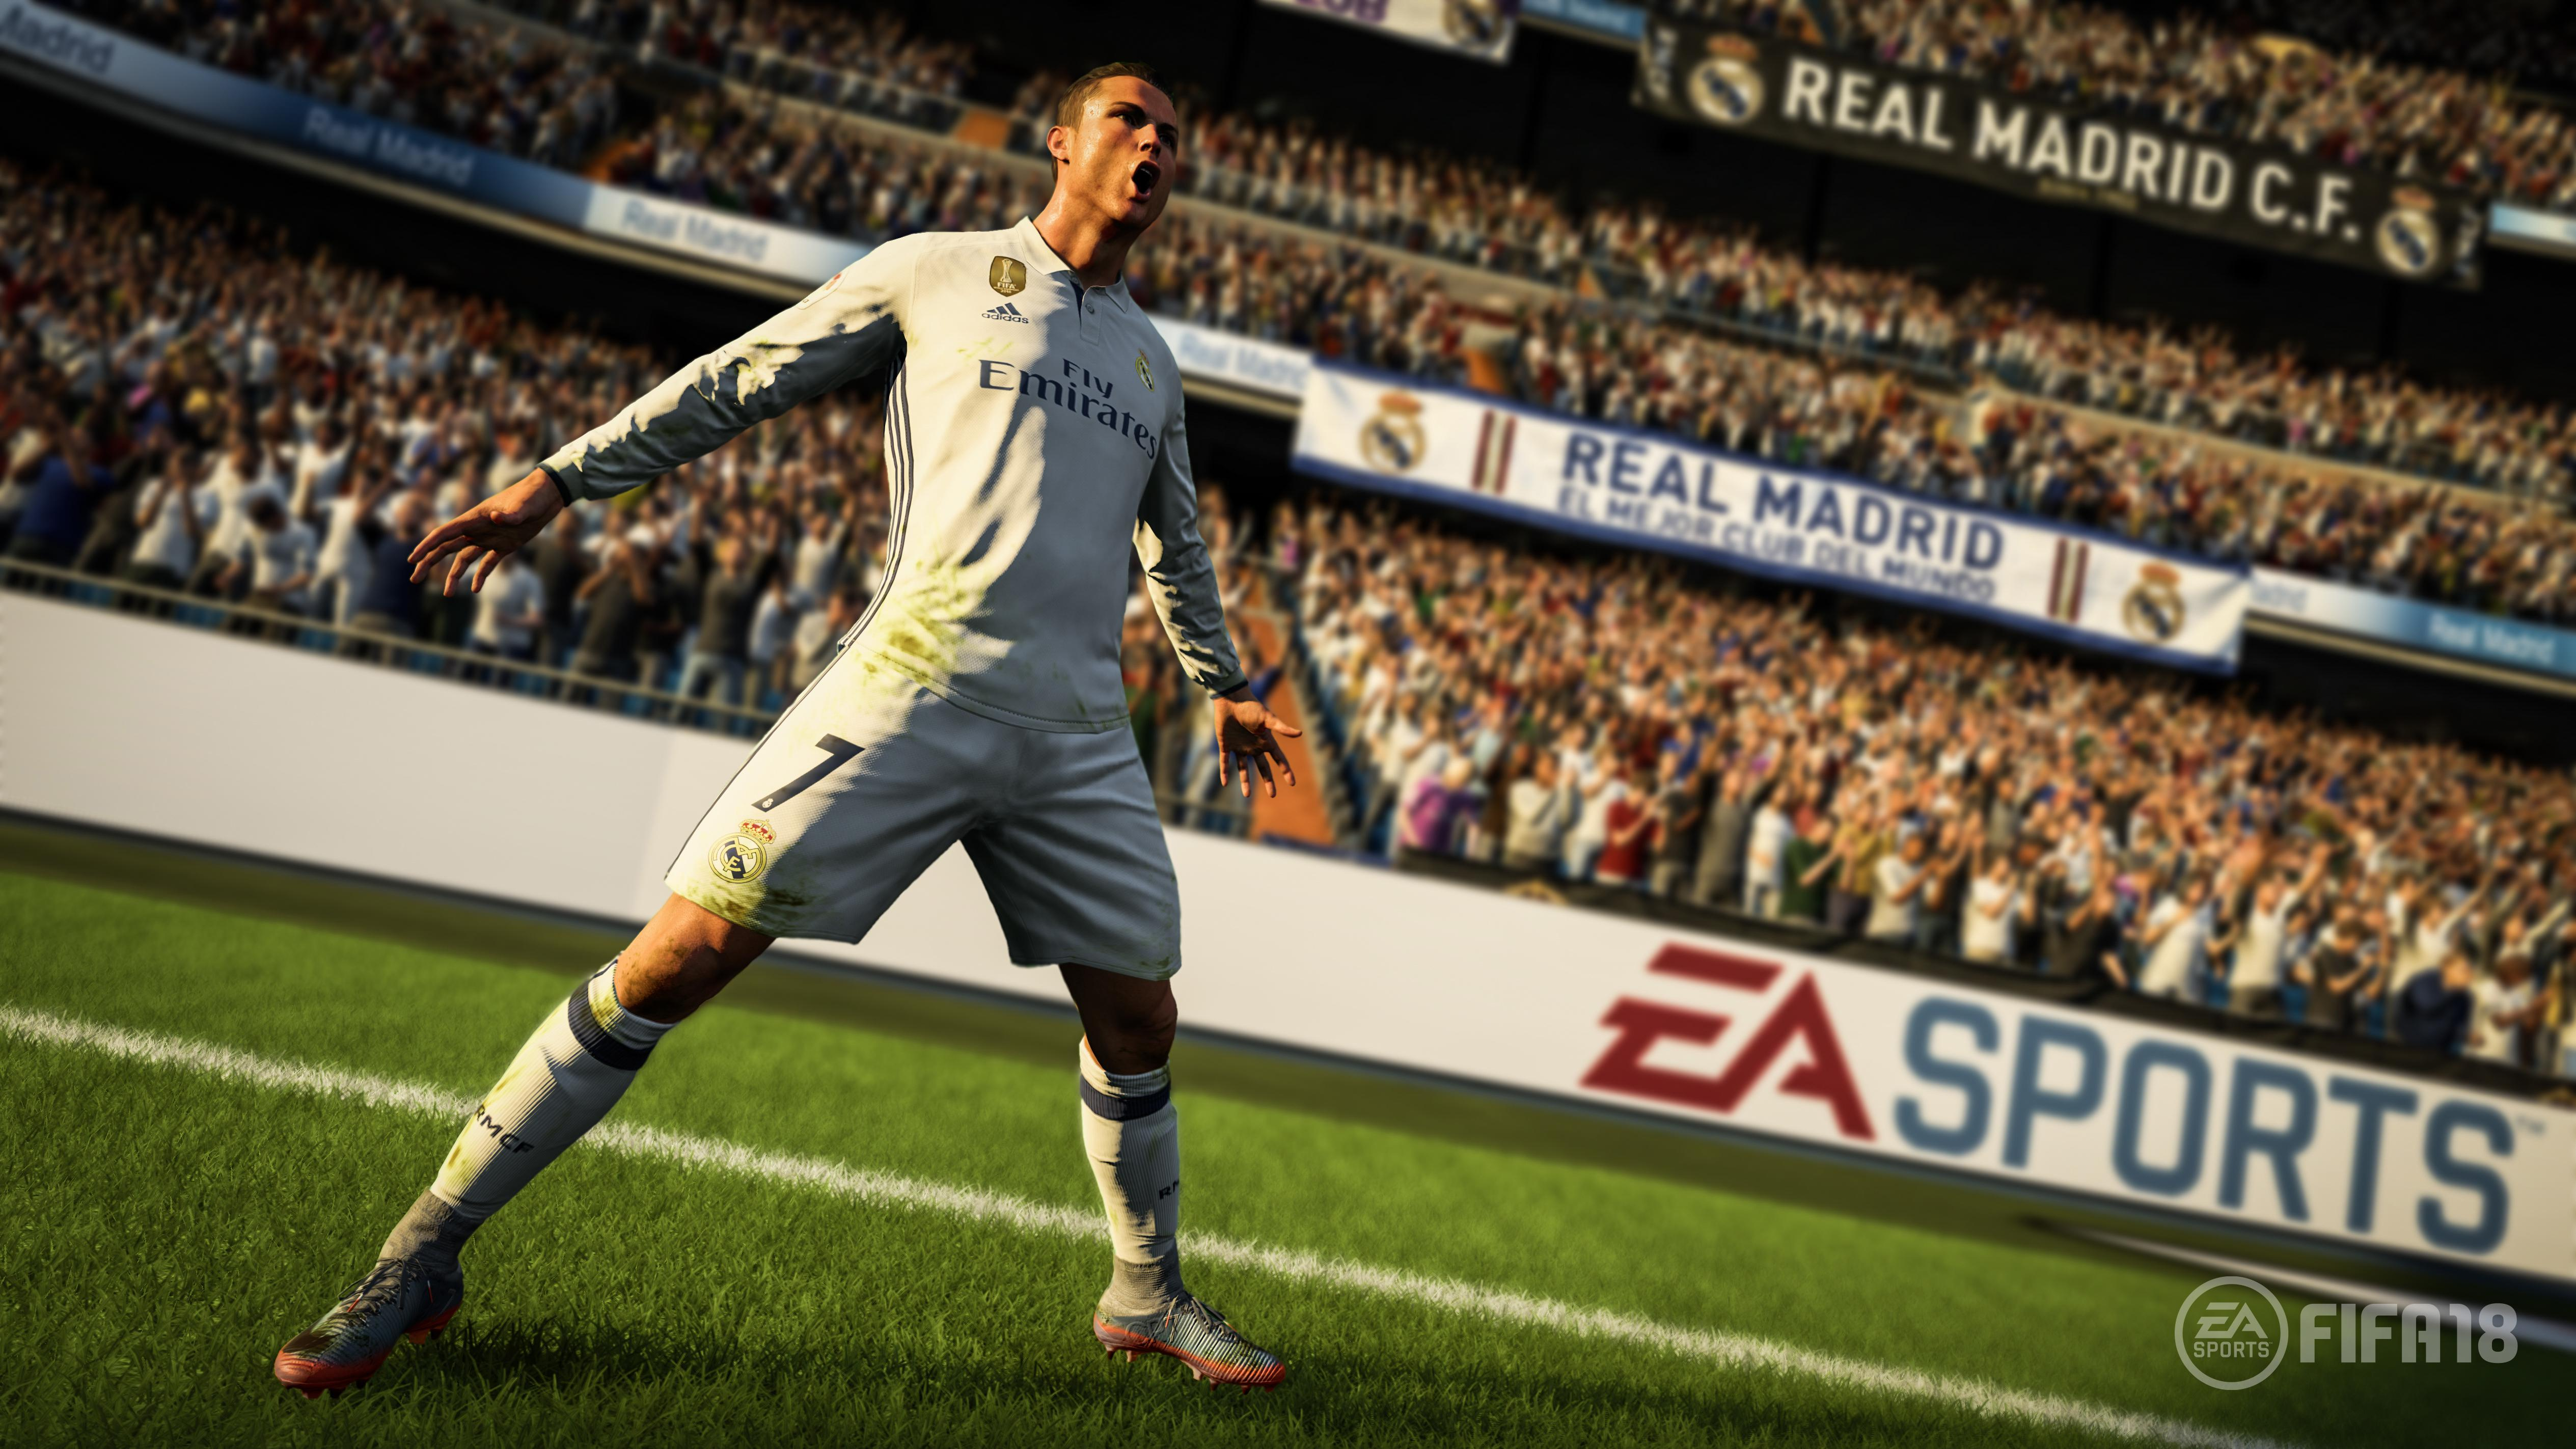 EA Sports has released a few patches already in an attempt to improve the gameplay